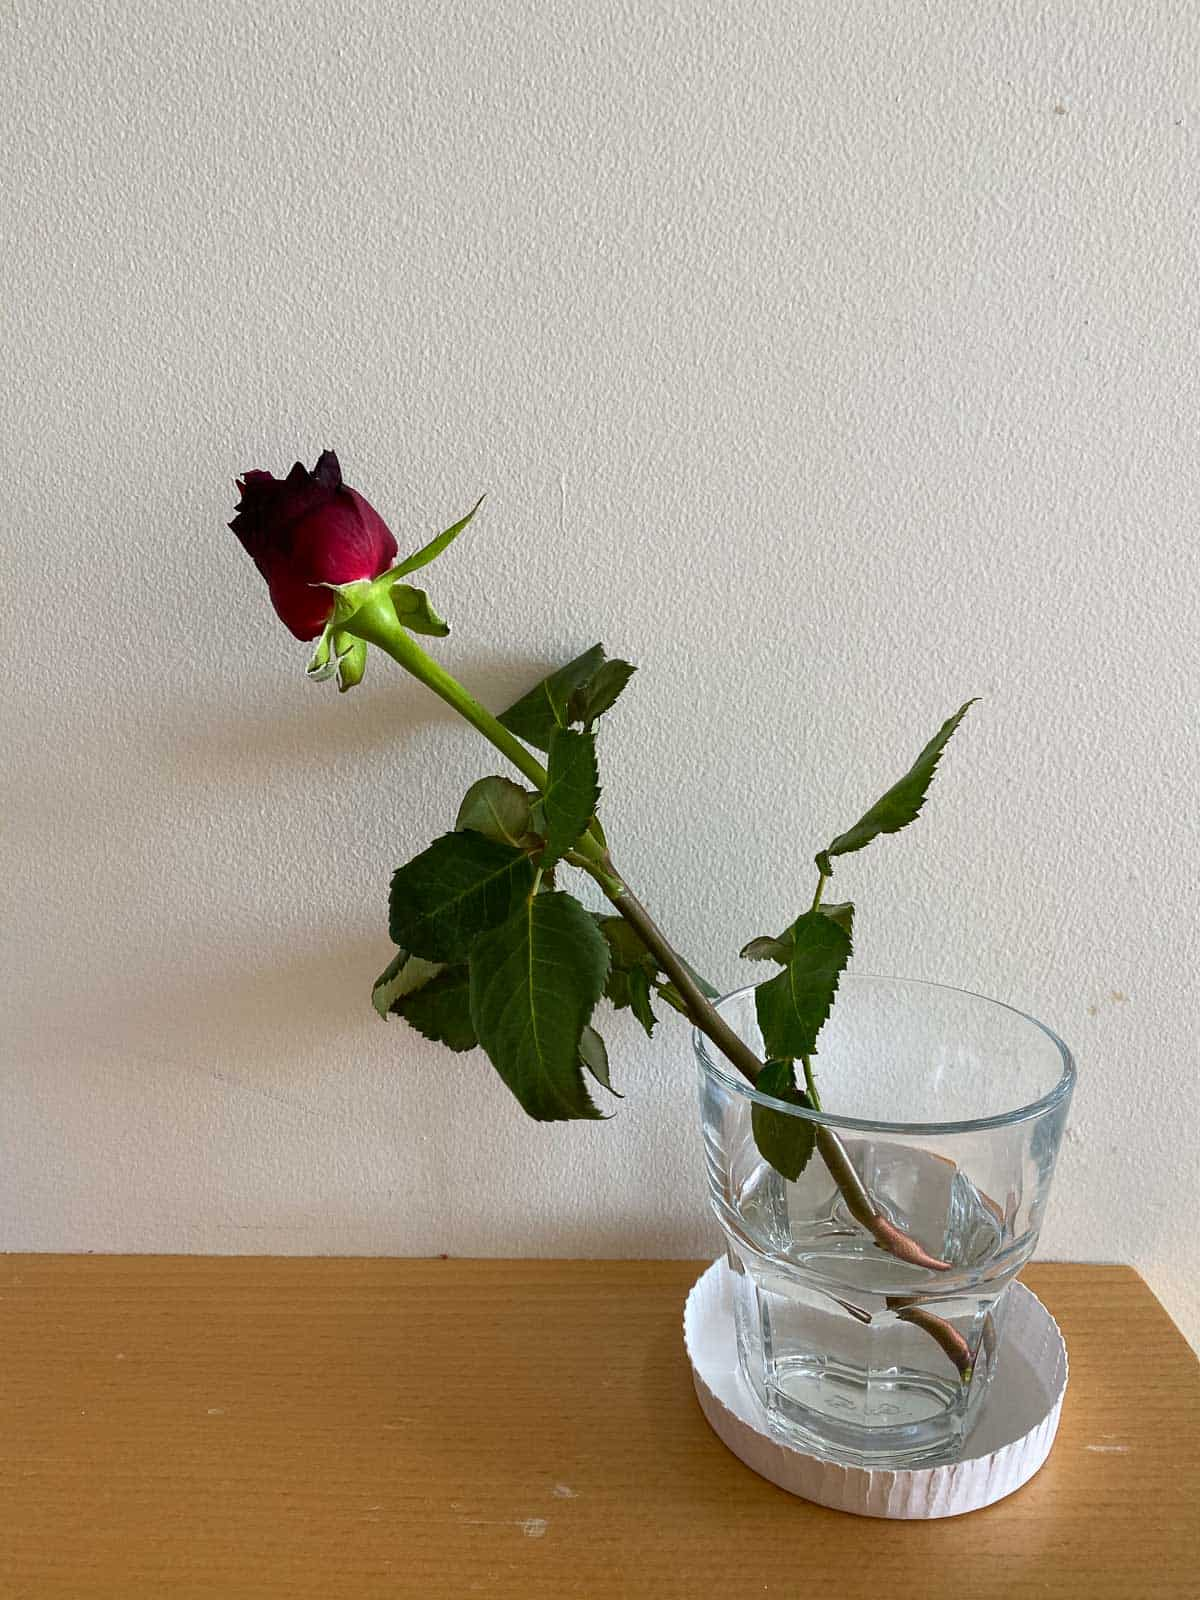 a single rose in a small glass vase